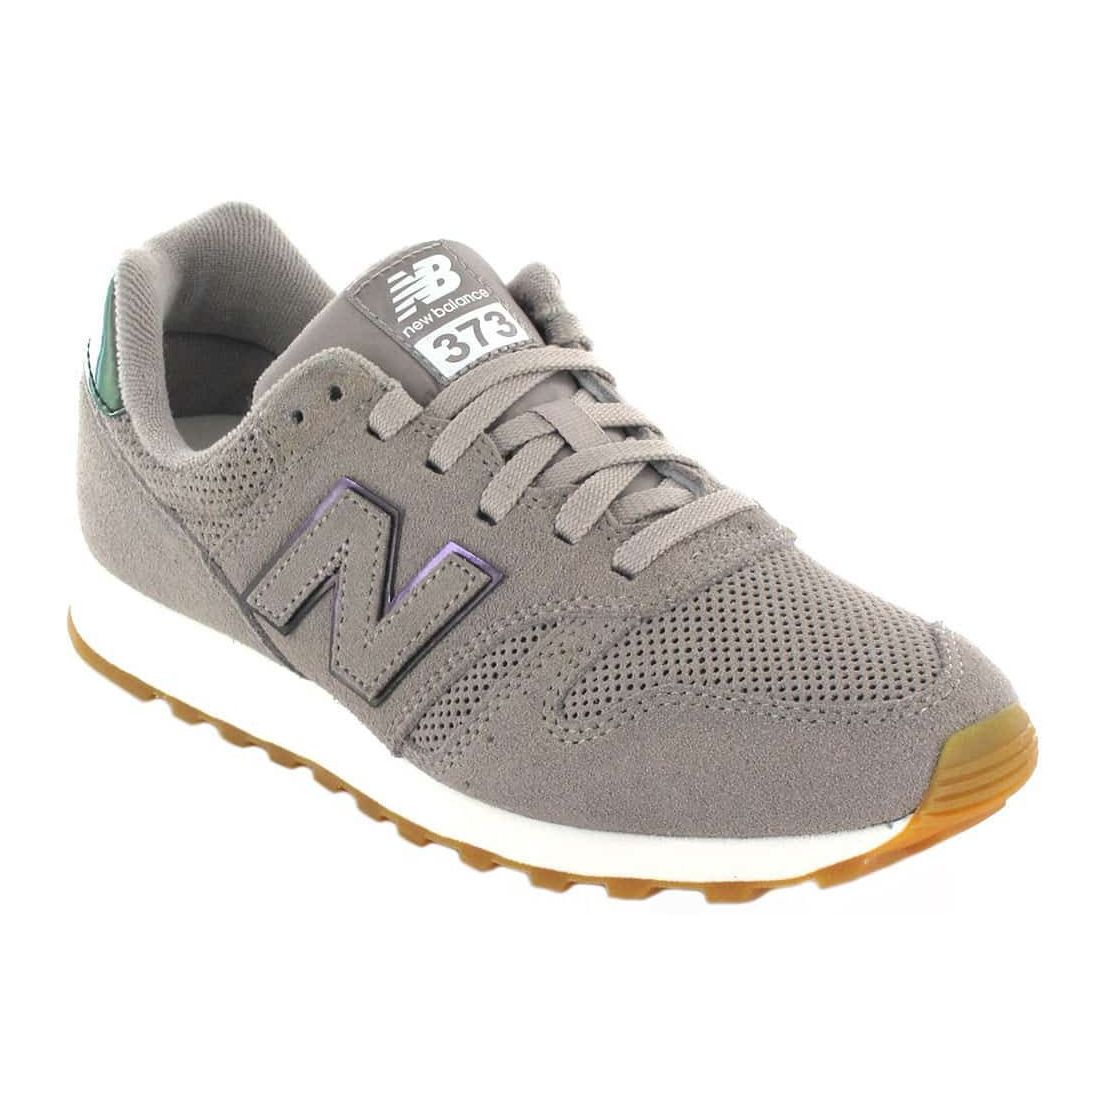 New Balance WL373WNF New Balance Calzado Casual Mujer Lifestyle Tallas: 37, 38, 39, 40, 40,5, 41, 37,5; Color: beige